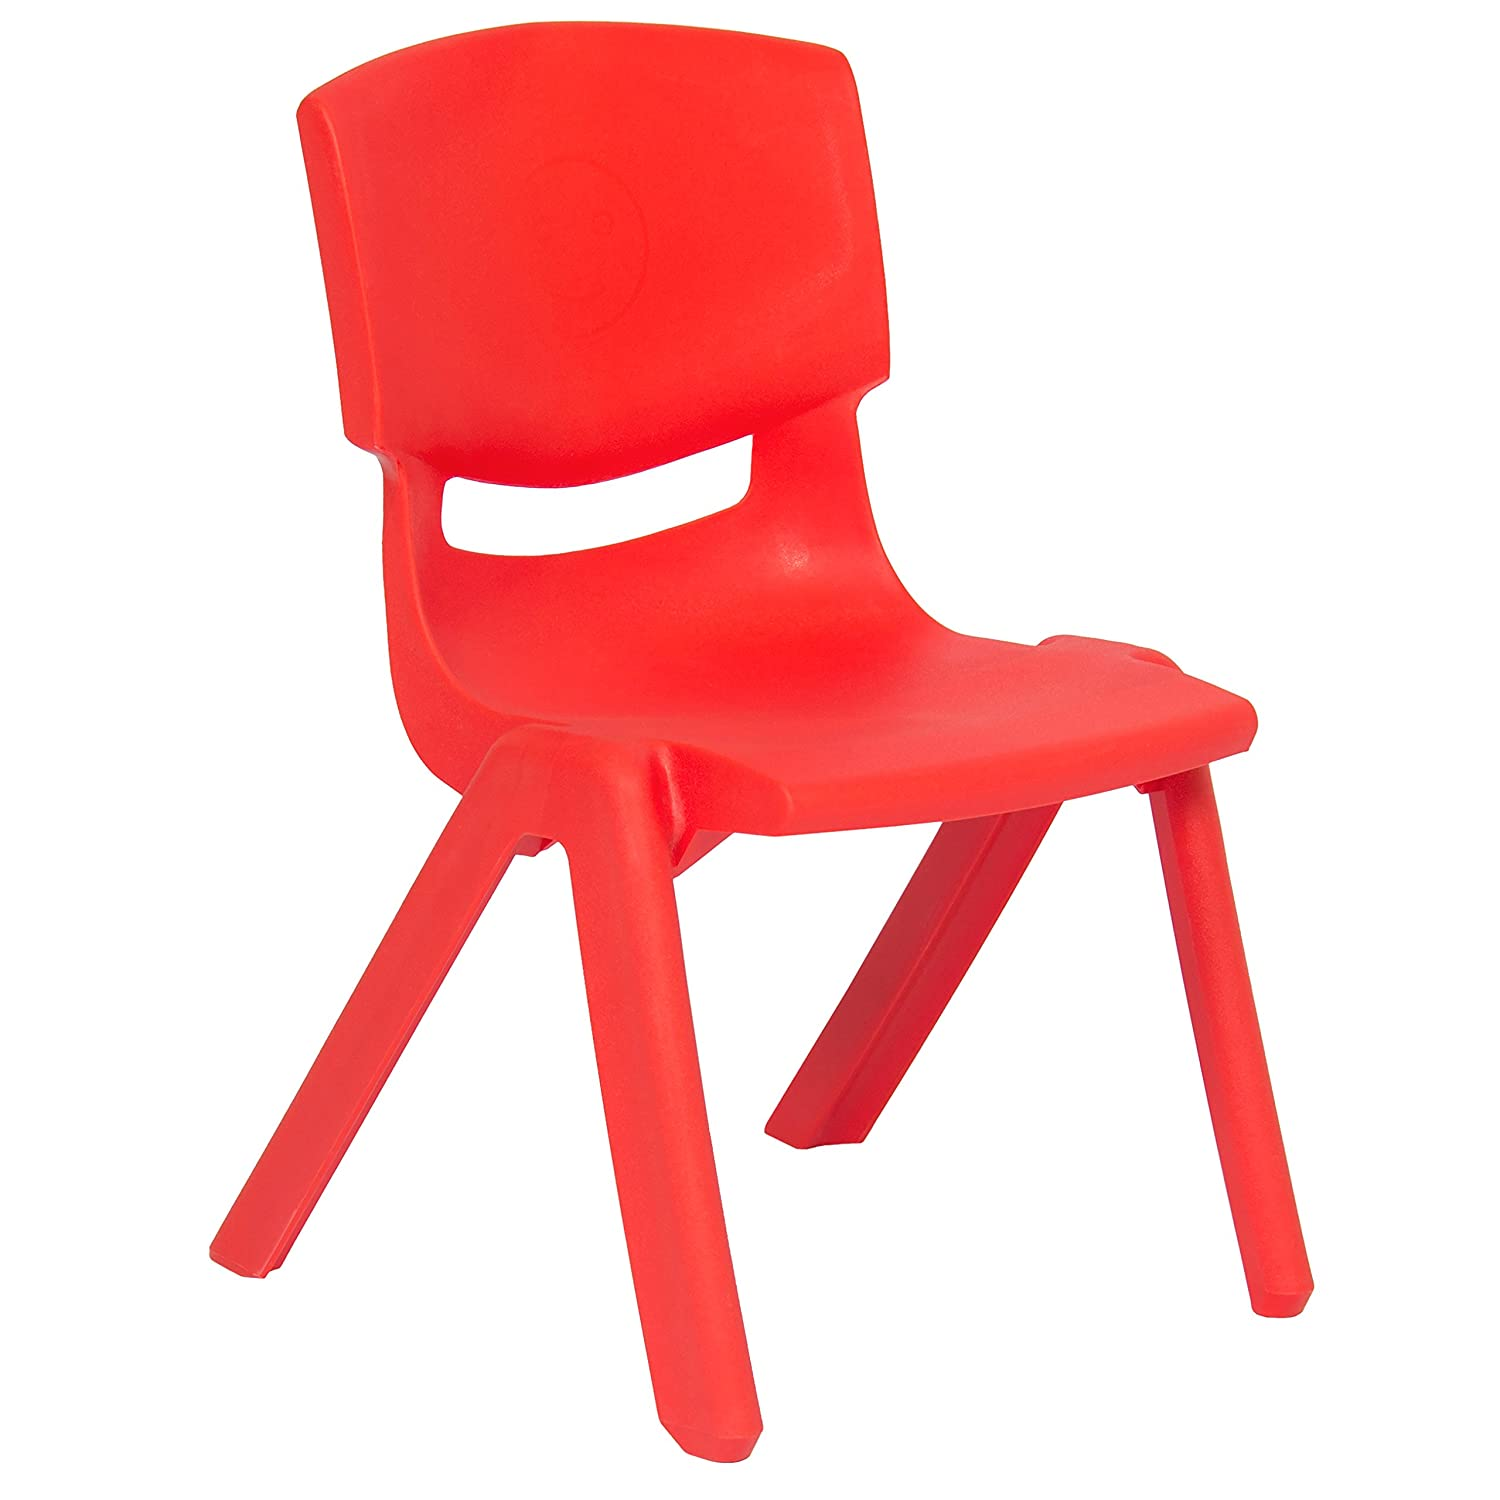 Wonderful Amazon.com: Best Choice Products Multicolored Kids Plastic Table And 4  Chairs Set Colorful Furniture Play Fun School Home: Home U0026 Kitchen